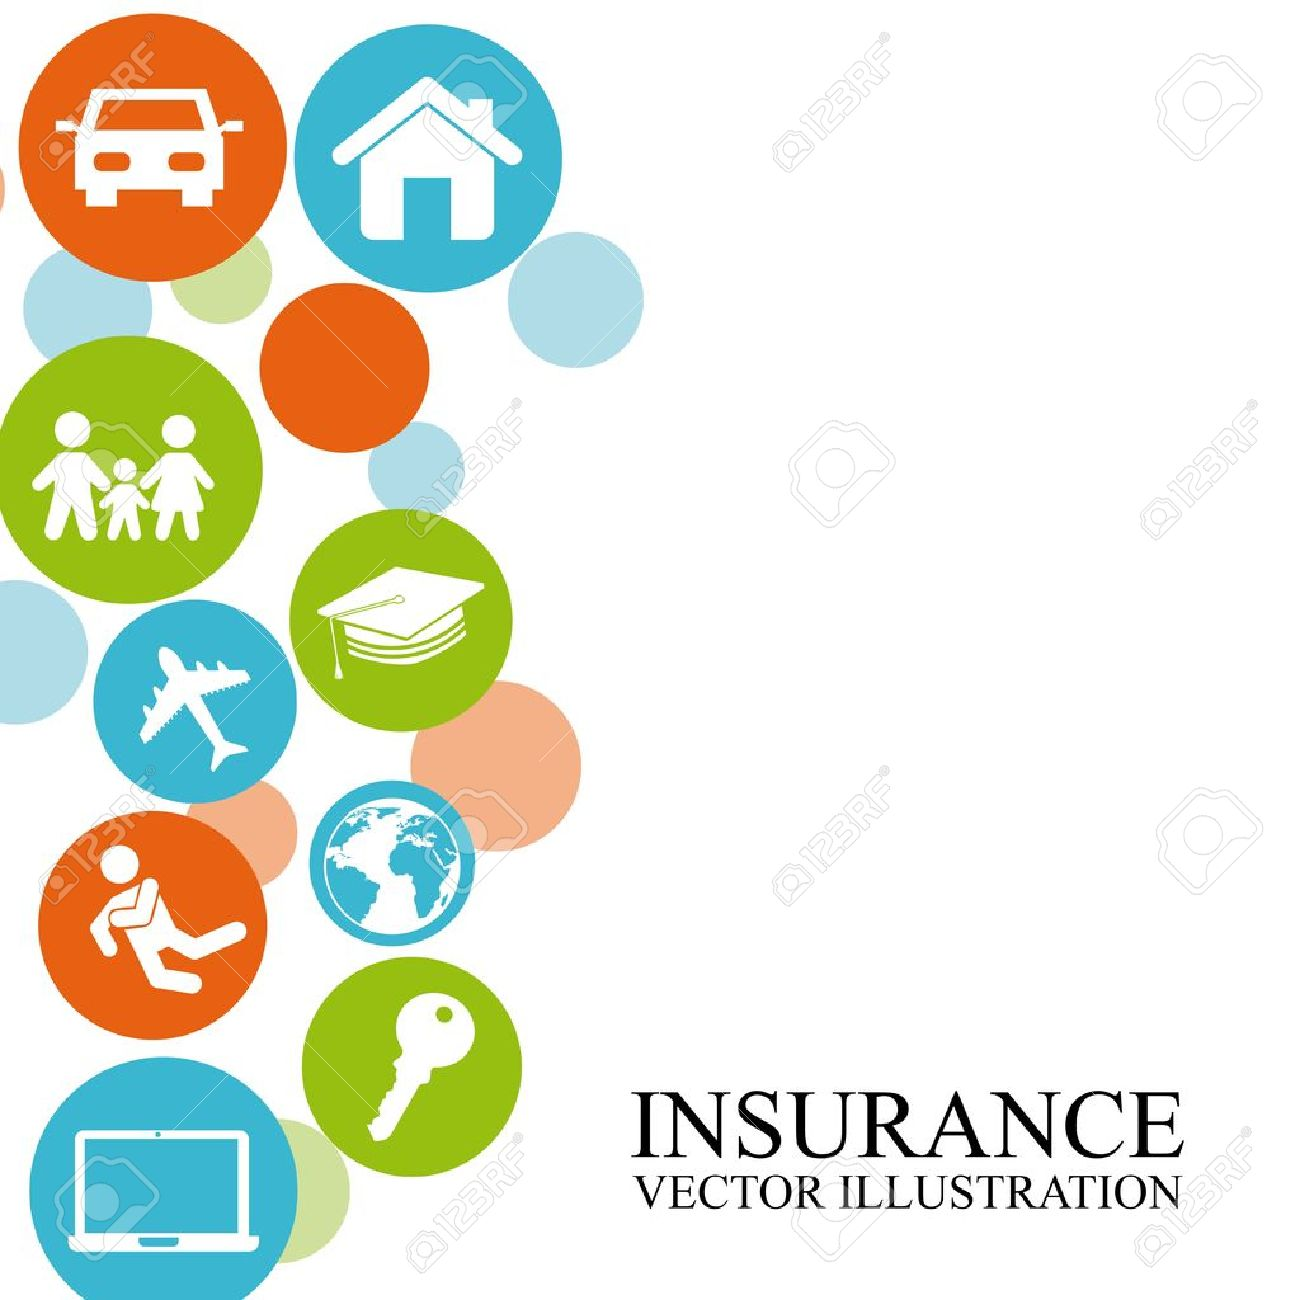 Insurance Design Over White Background Royalty Cliparts 1300x1300